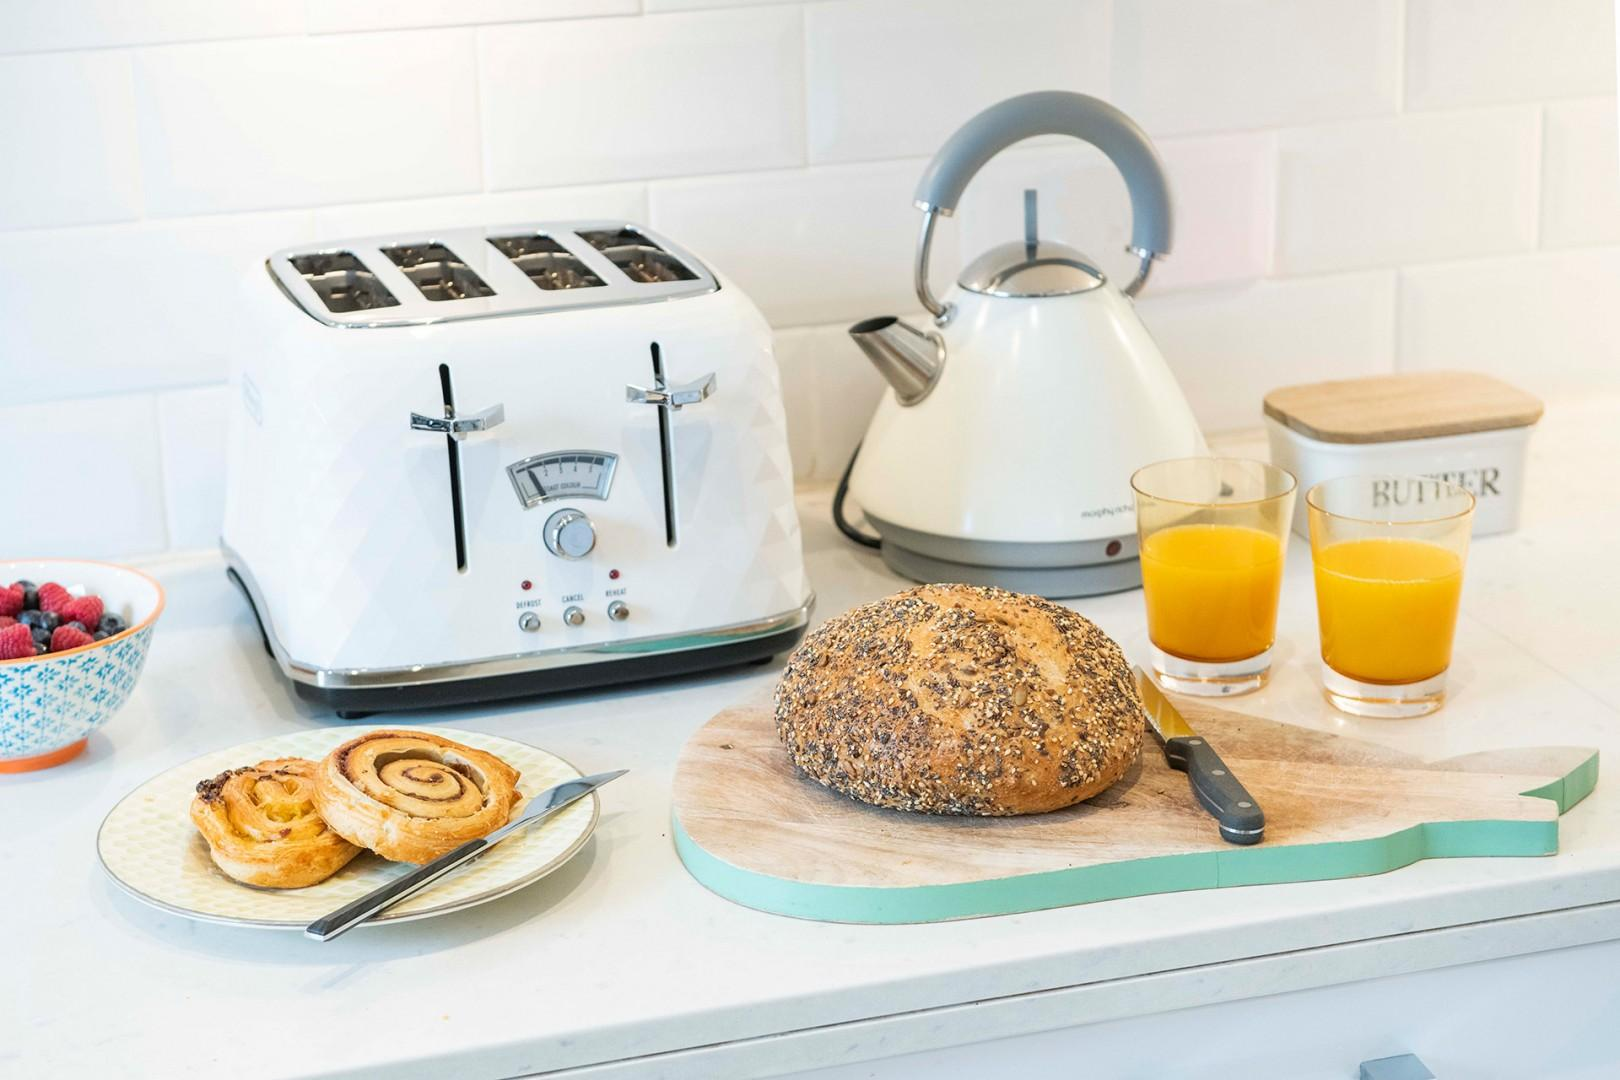 Prepare breakfast at home before a busy day of sightseeing